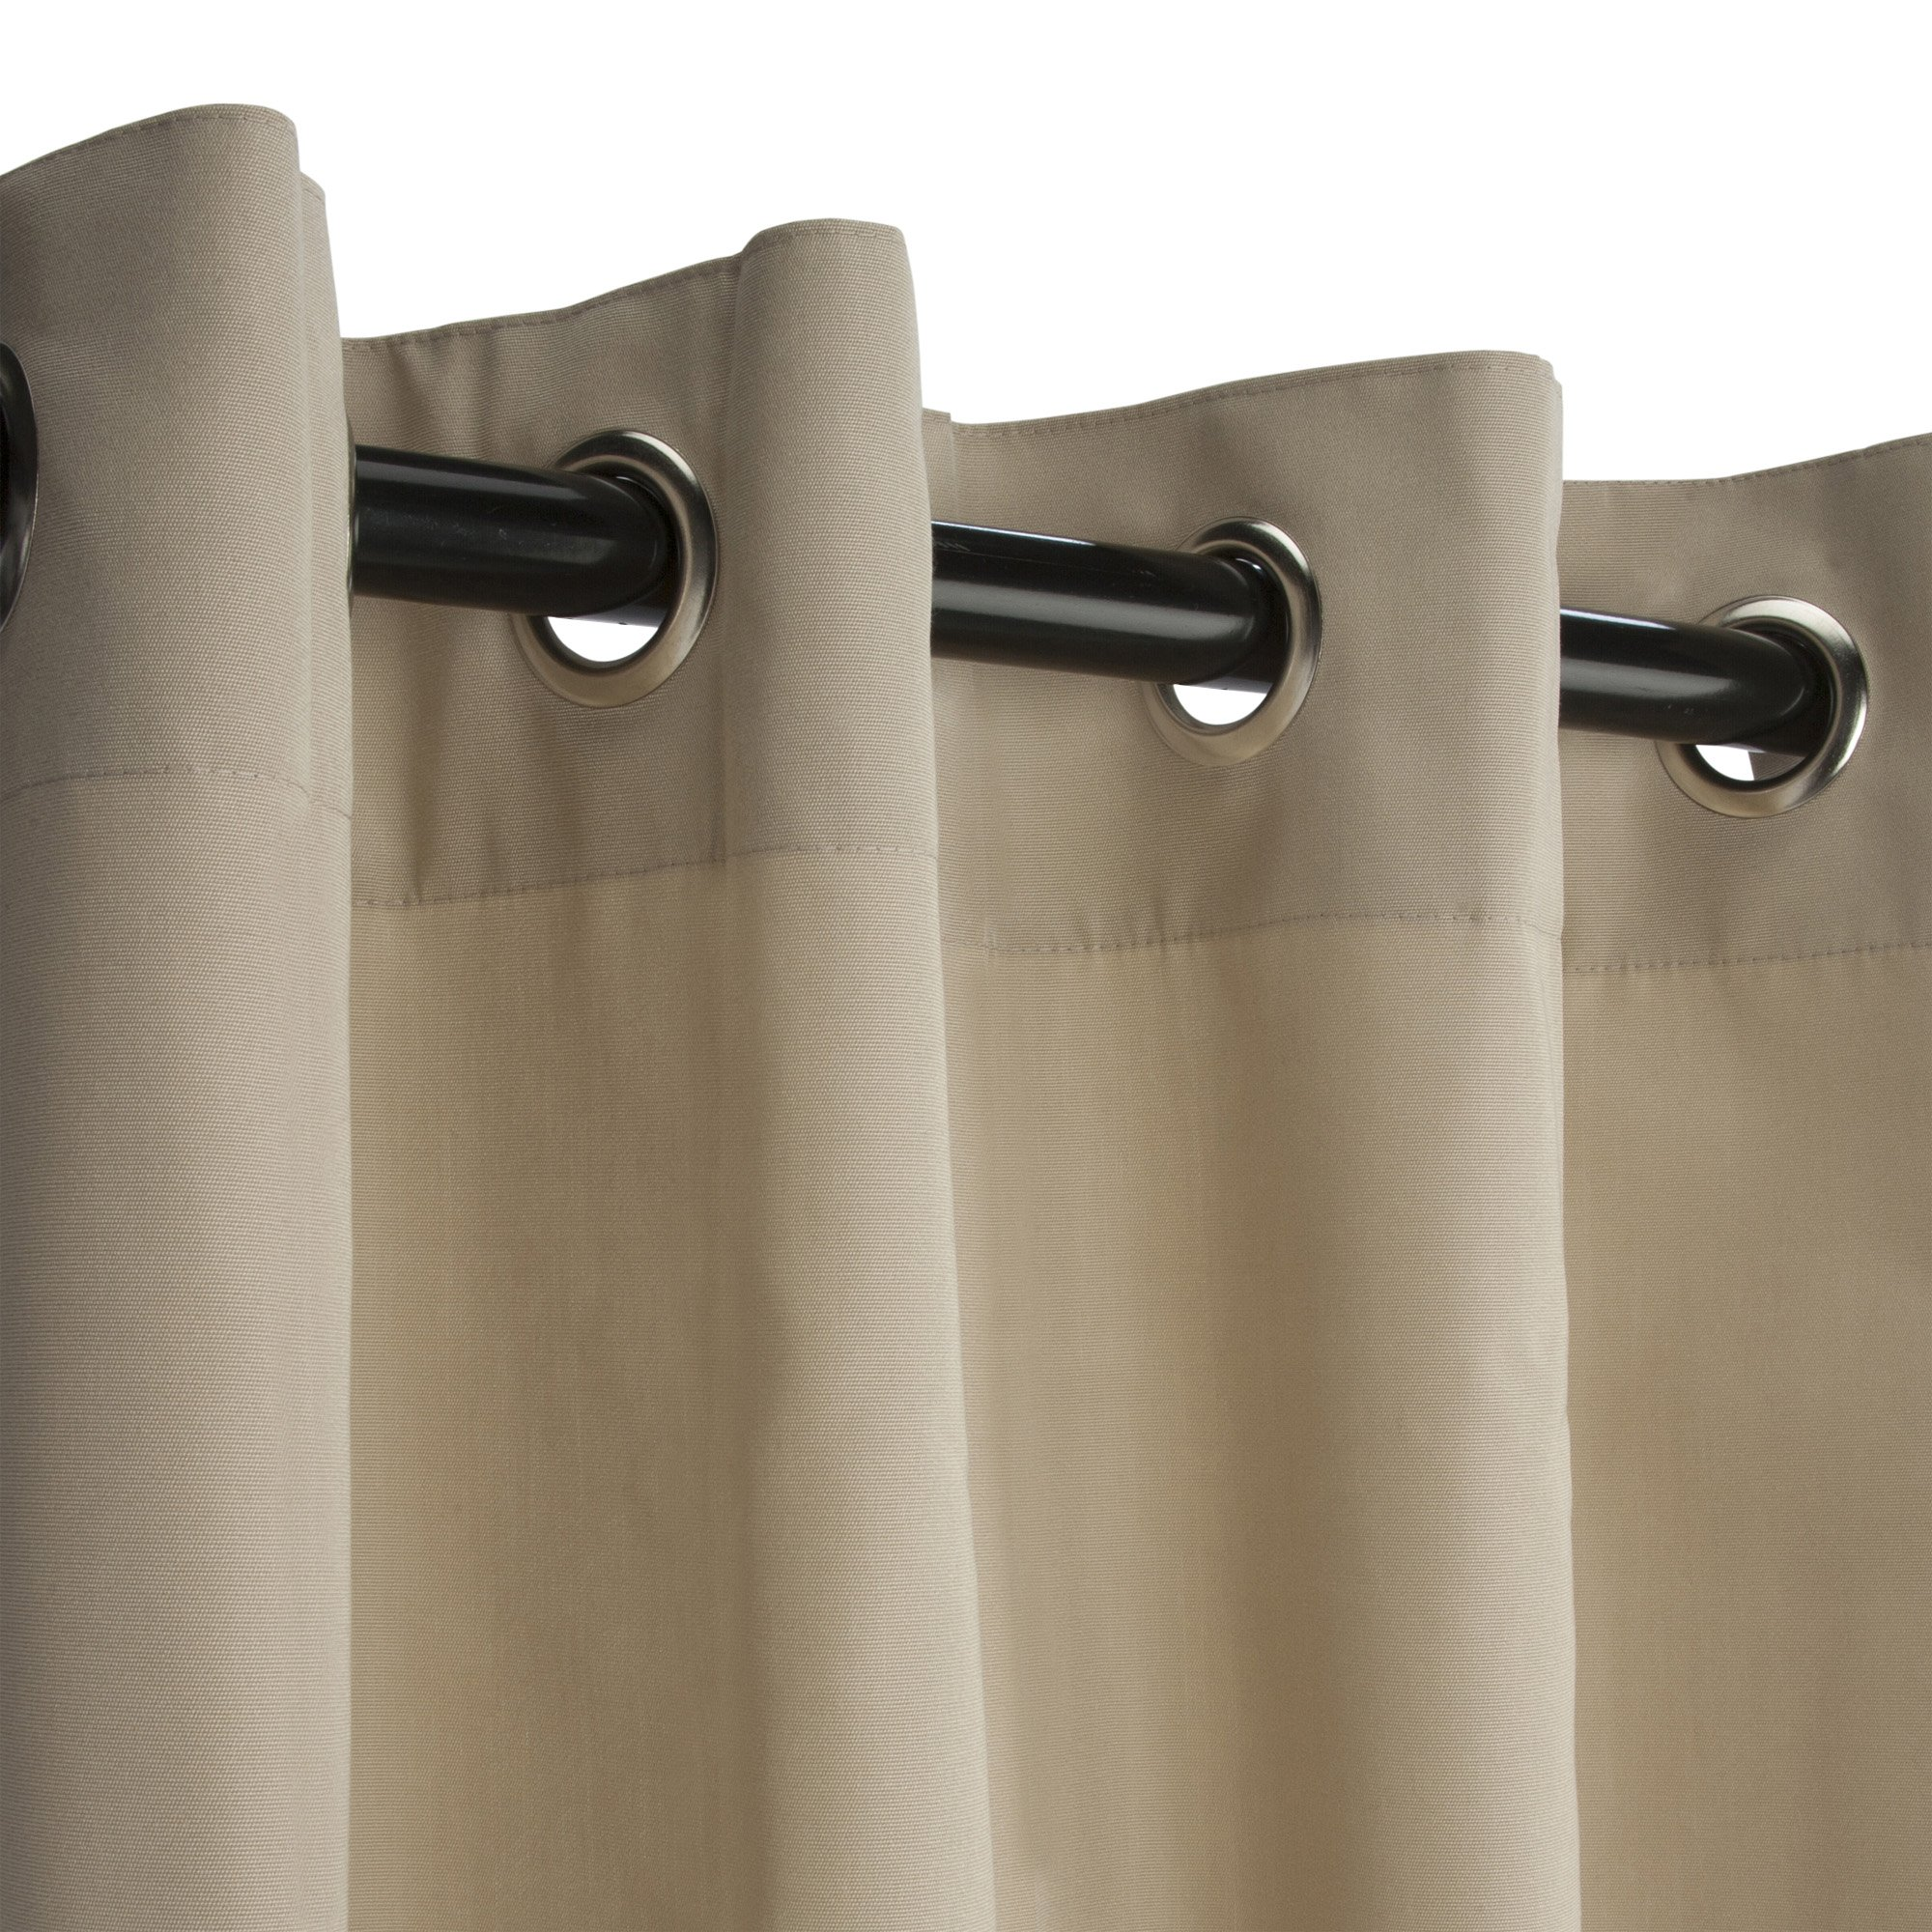 Sunbrella Outdoor Curtain Panel, Nickel Grommet Top, 50 by 120 Inch, Antique Beige (Available in Multiple Colors and Sizes) Includes Custom Storage Bag; Perfect For a Patio, Porch, Gazebo,or Pergola